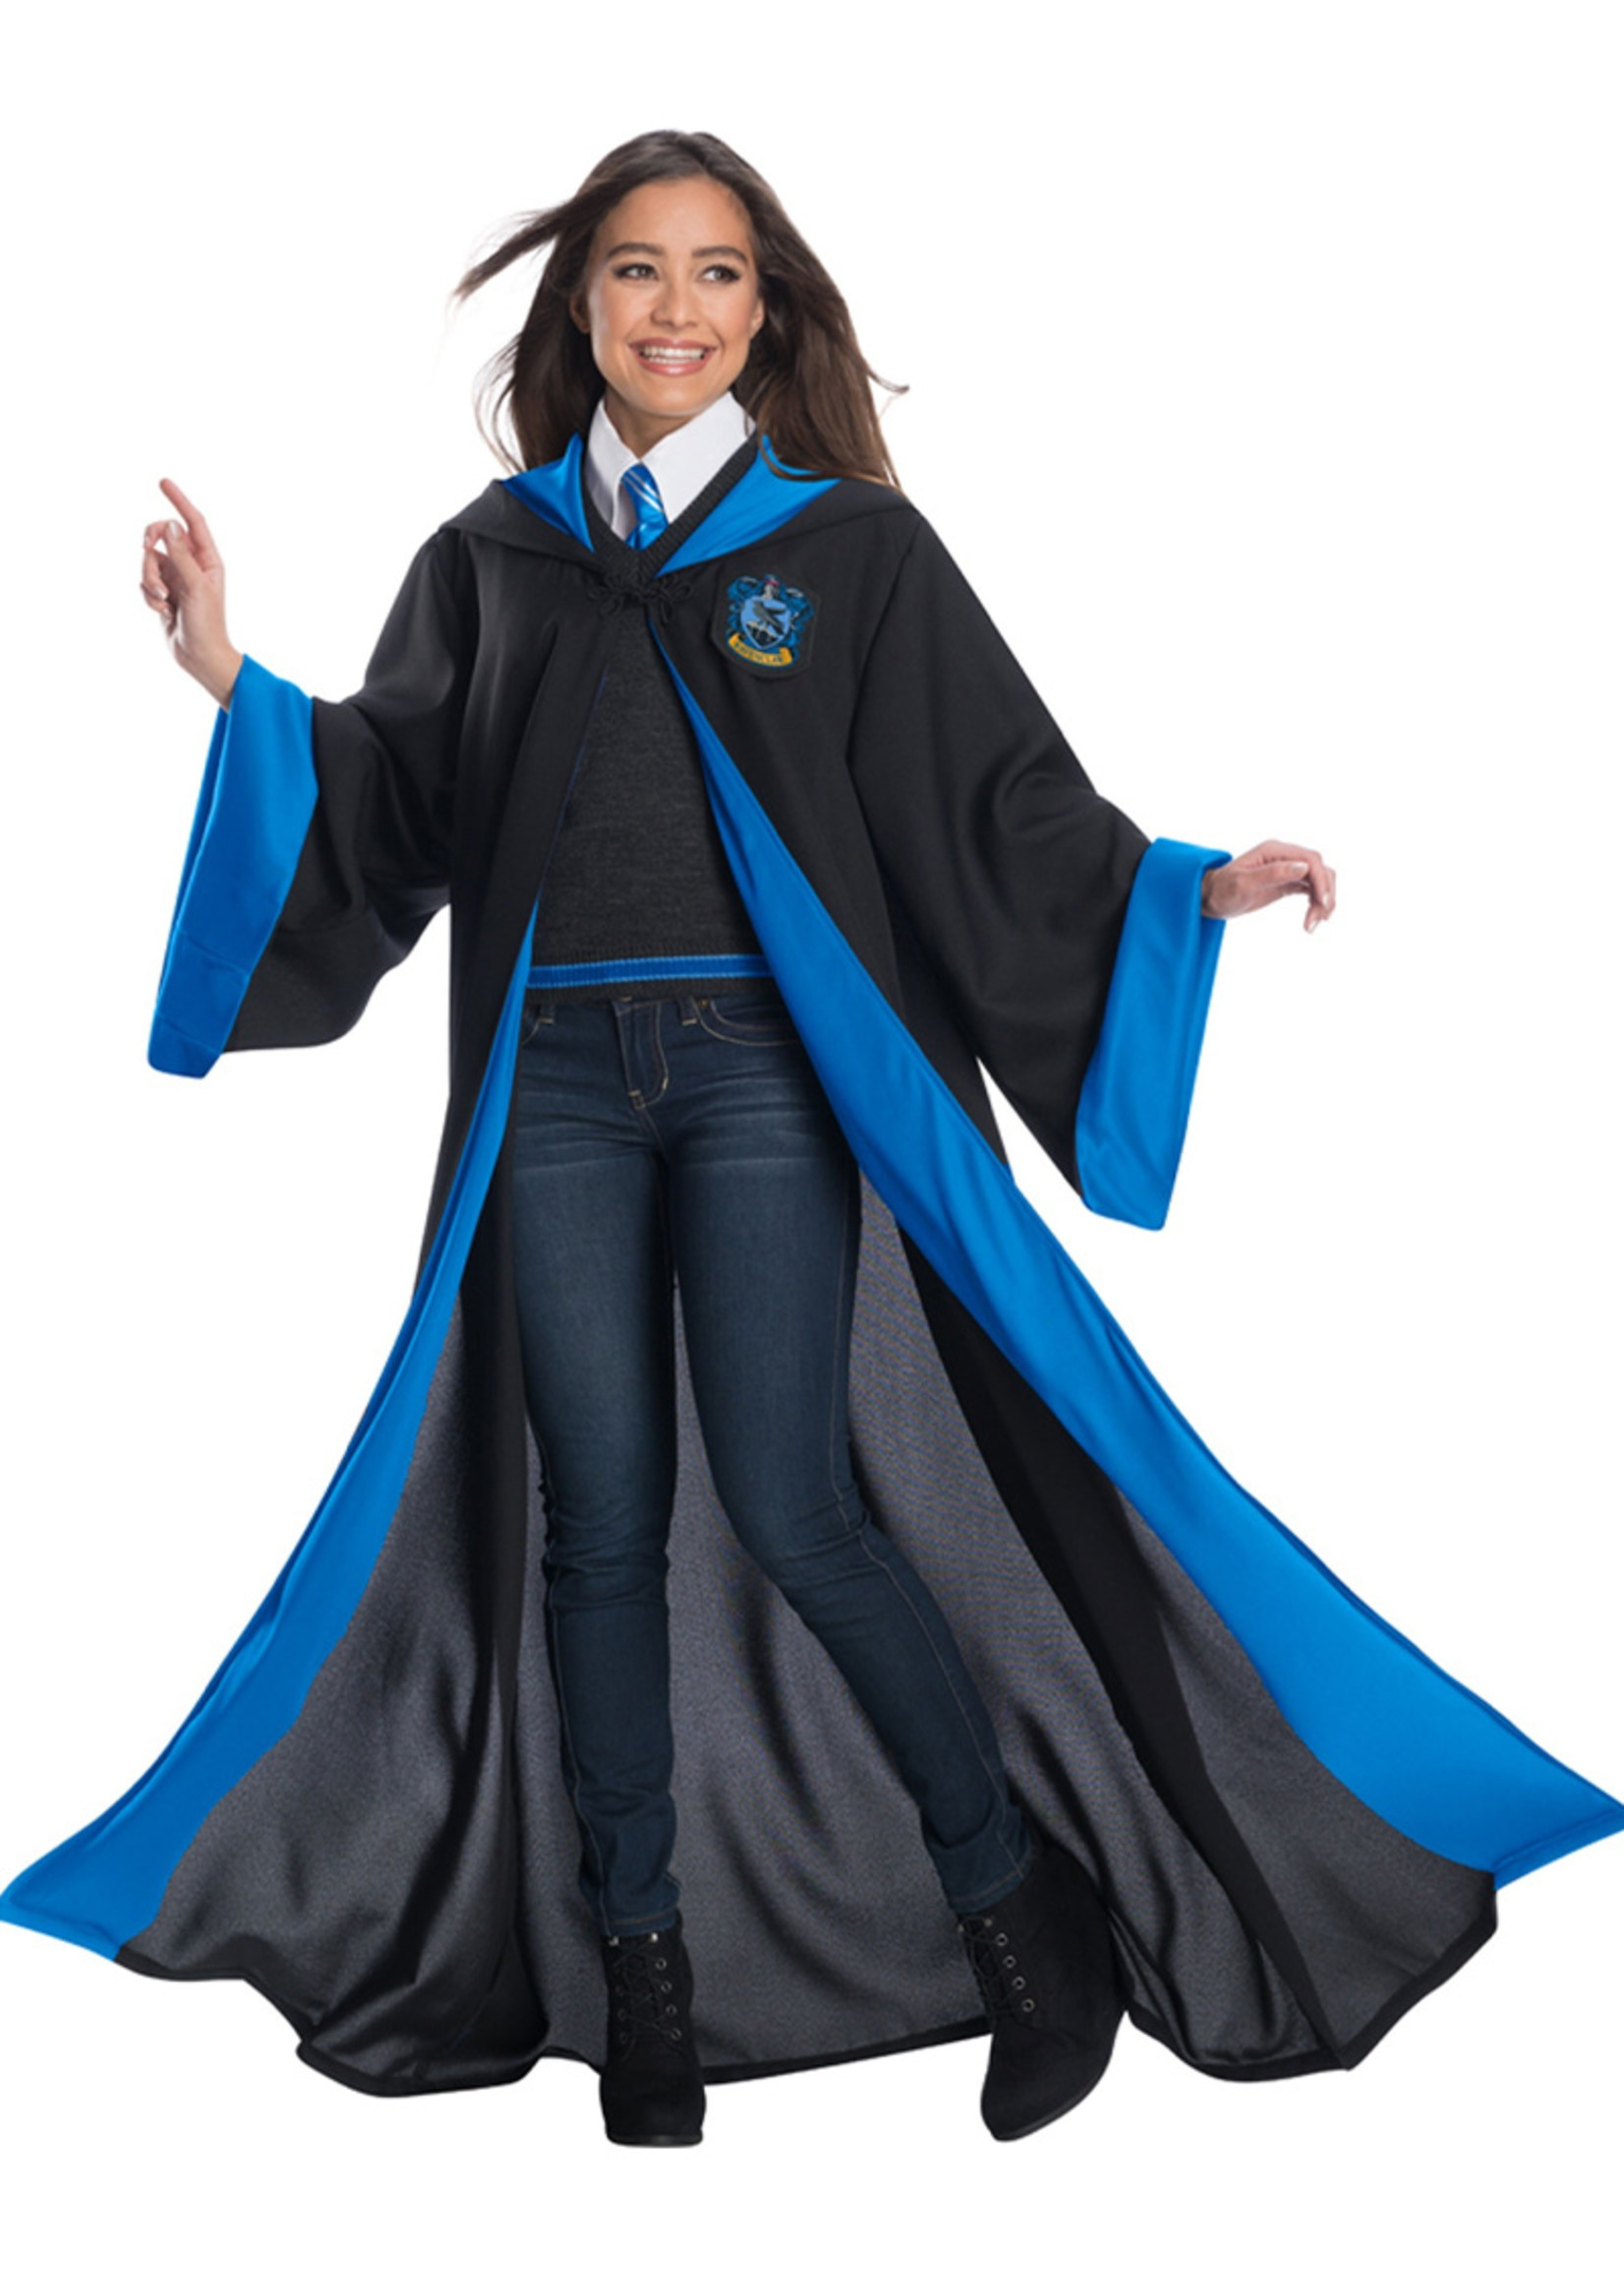 Ravenclaw Student Costume - Harry Potter - Adult